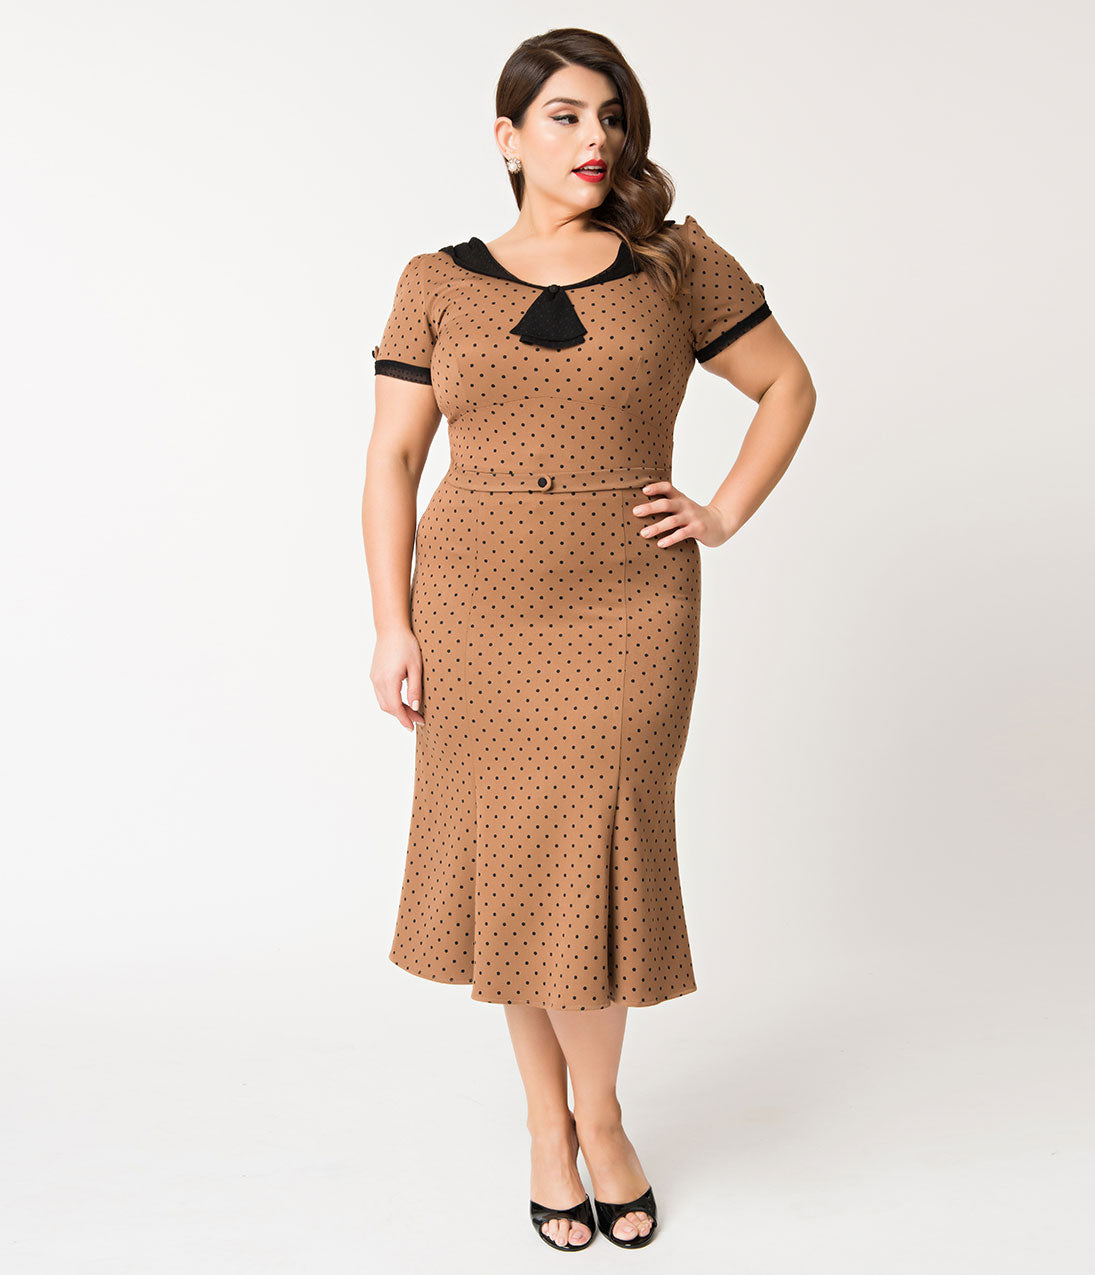 1930s Art Deco Plus Size Dresses | Tea Dresses, Party Dresses Stop Staring Plus Size 1930S Tan  Black Dot Railene Dress $172.00 AT vintagedancer.com